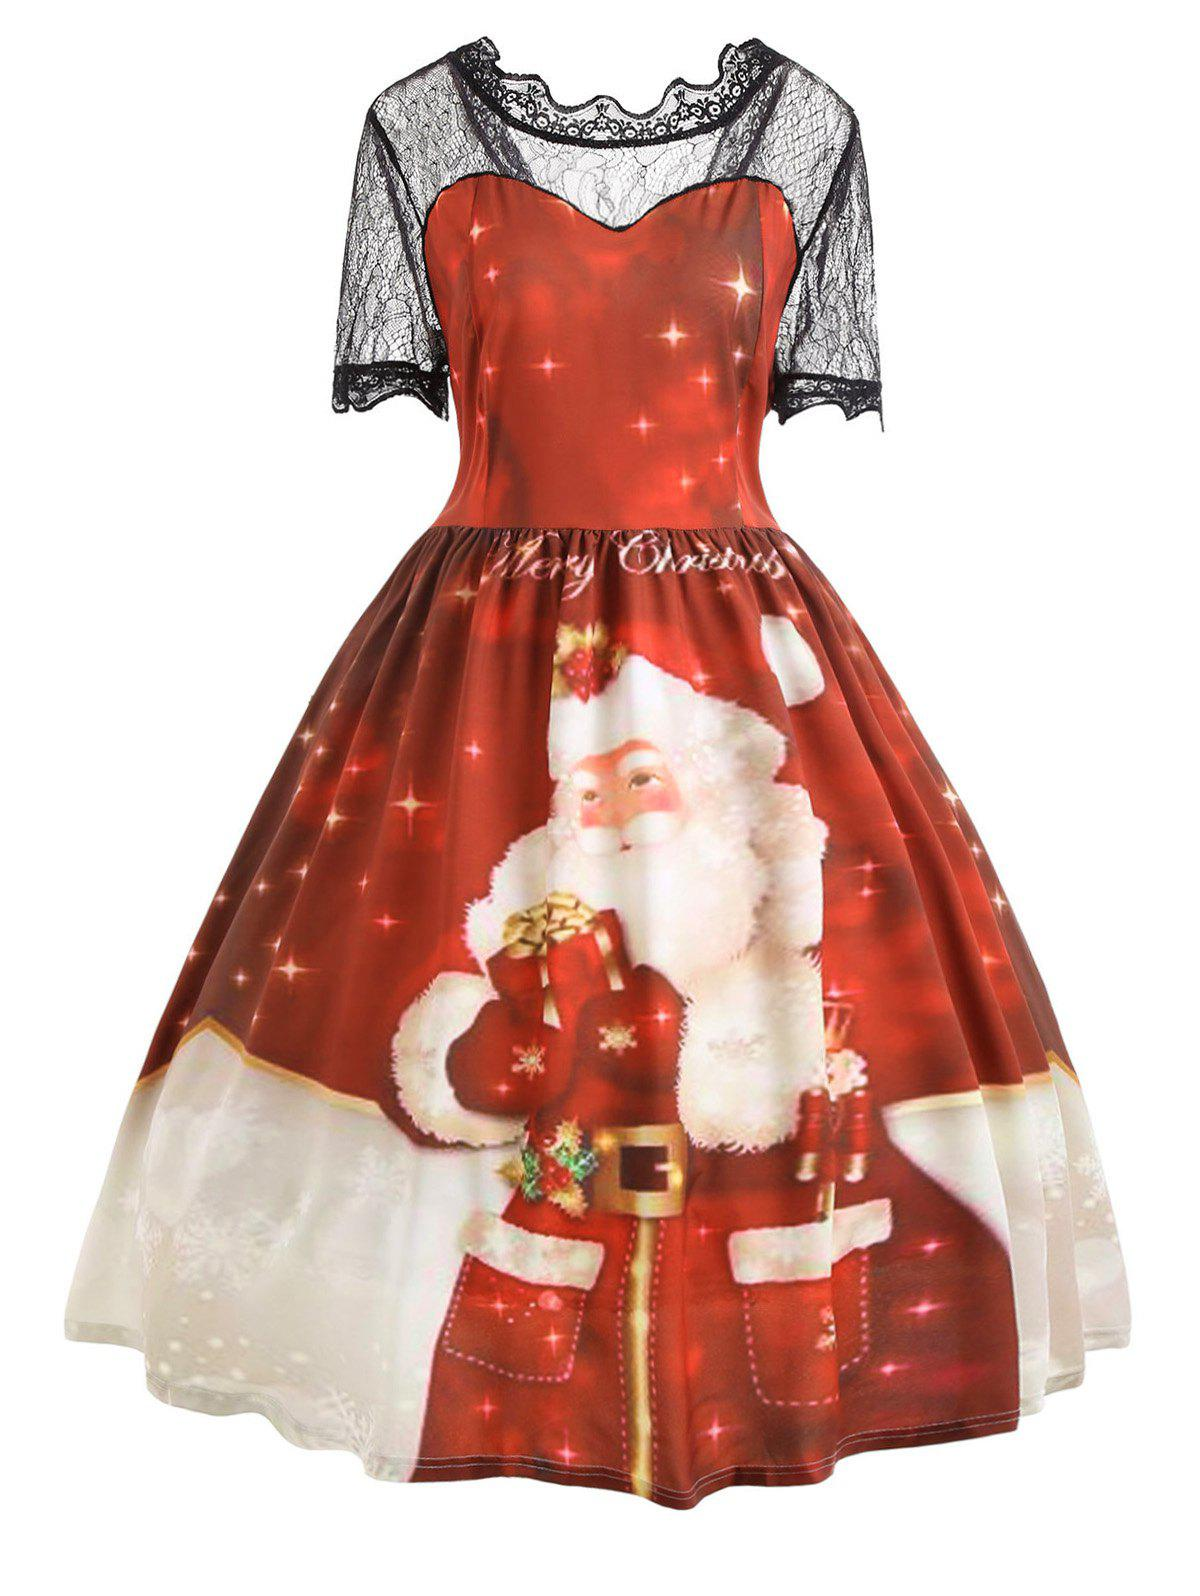 Merry Christmas Santa Claus Plus Size Lace DressWOMEN<br><br>Size: 4XL; Color: RED; Style: Vintage; Material: Polyester; Silhouette: A-Line; Dresses Length: Mid-Calf; Neckline: Ruffled; Sleeve Length: Short Sleeves; Embellishment: Lace; Pattern Type: Letter,Print; With Belt: No; Season: Fall,Spring,Summer,Winter; Weight: 0.3100kg; Package Contents: 1 x Dress;